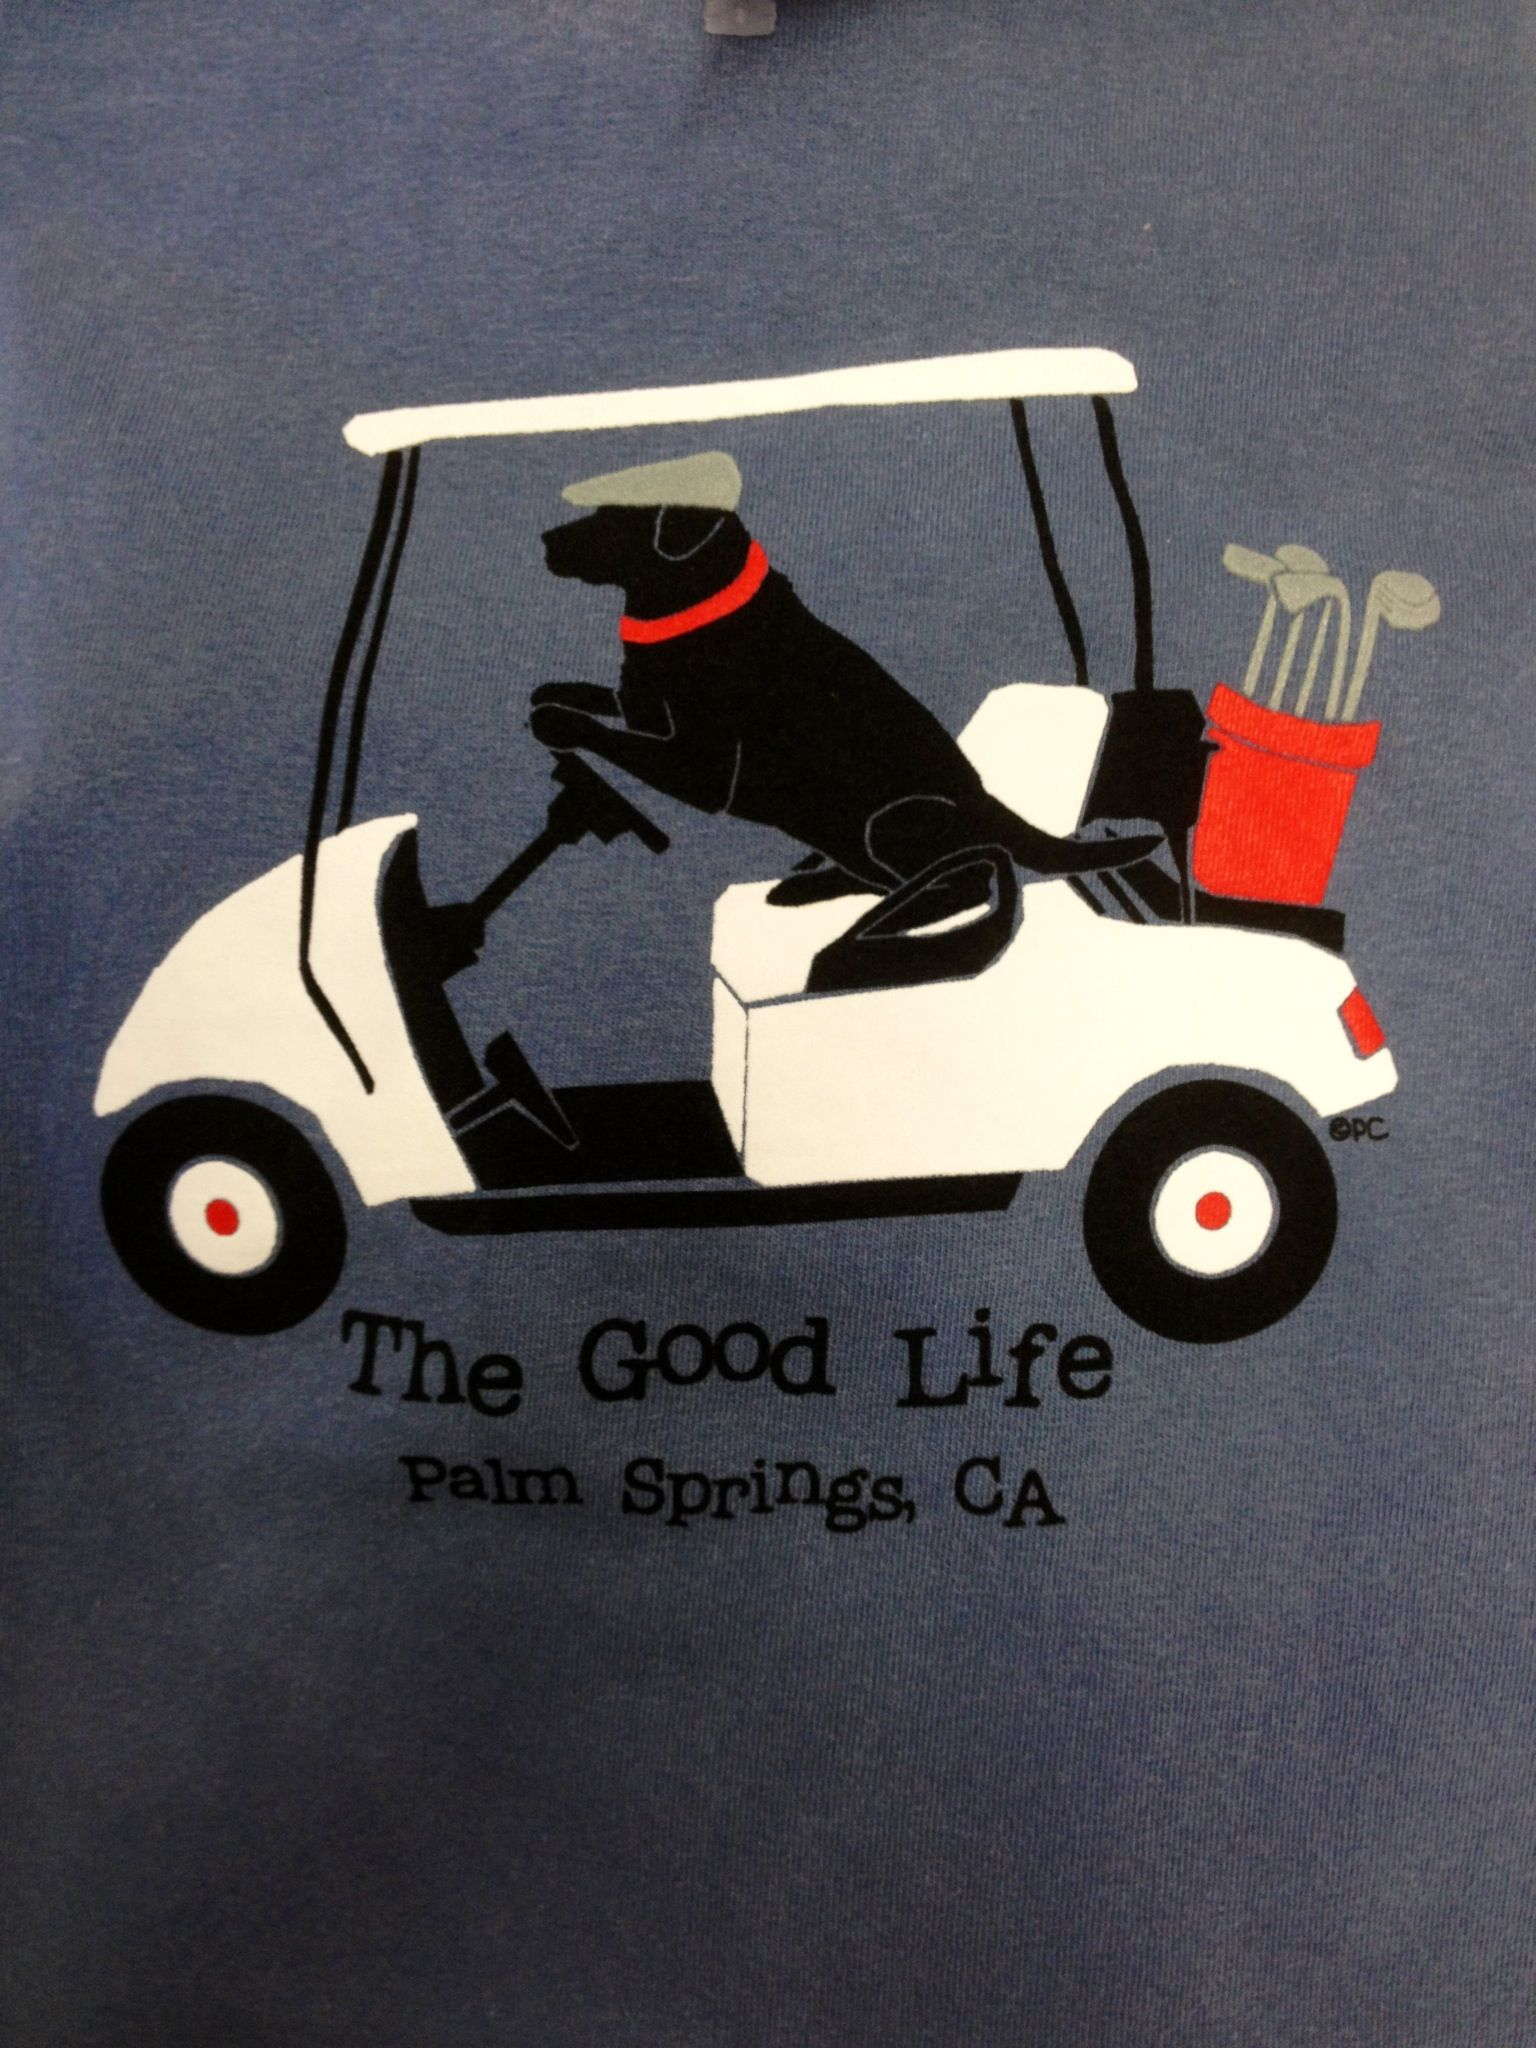 The Good Life T Shirt Features A Black Lab Driving Golf